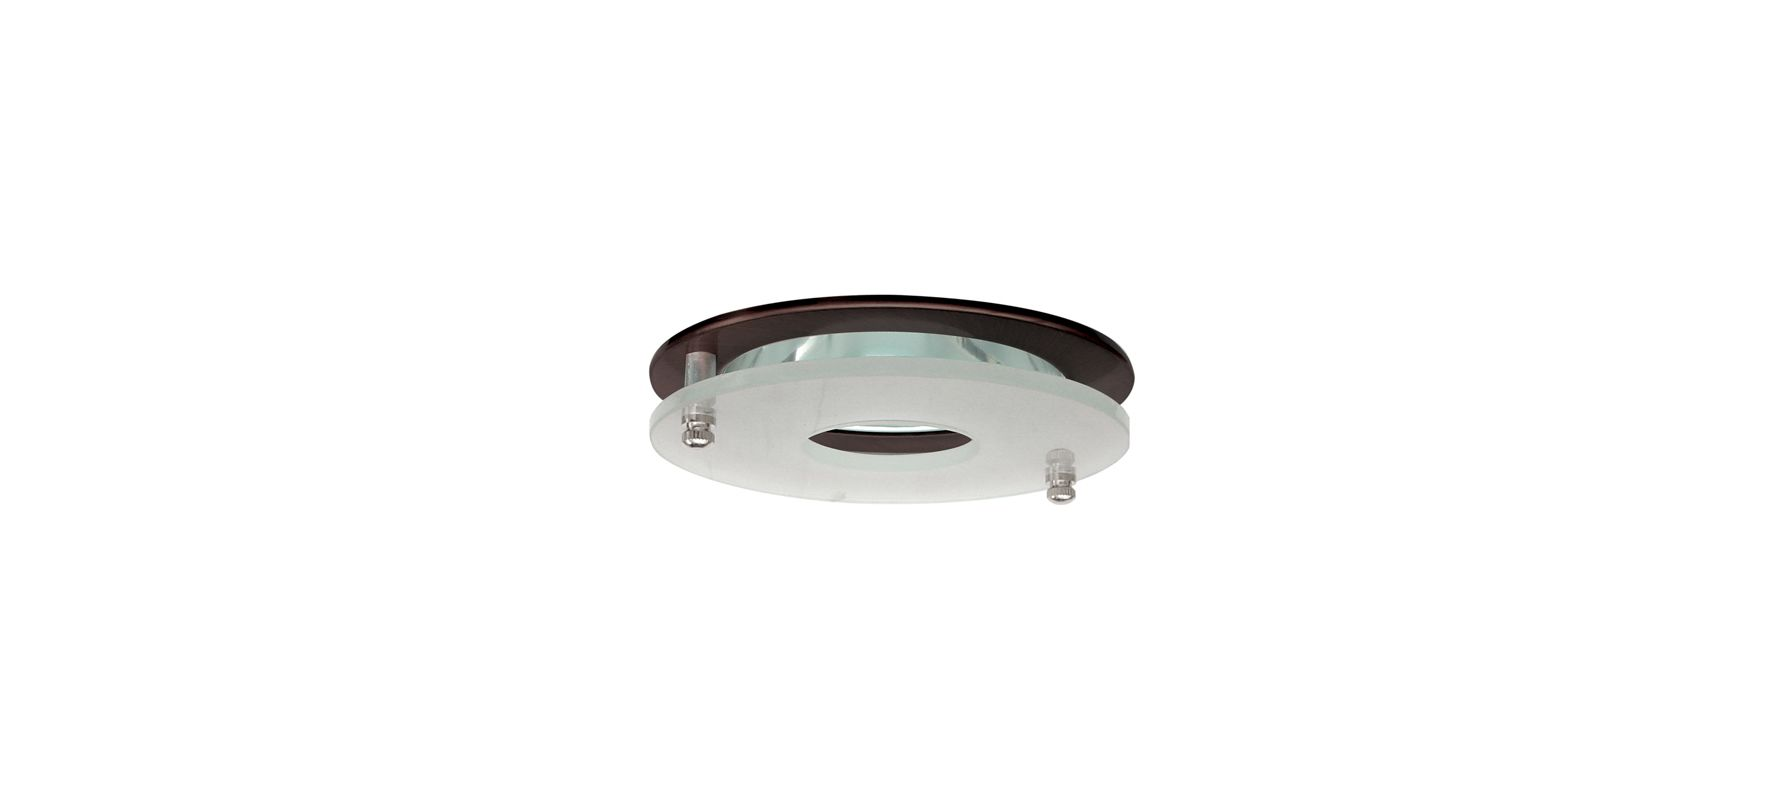 "Elco EL1426 4"" Low-Voltage Adjustable Clear Reflector with Suspended"